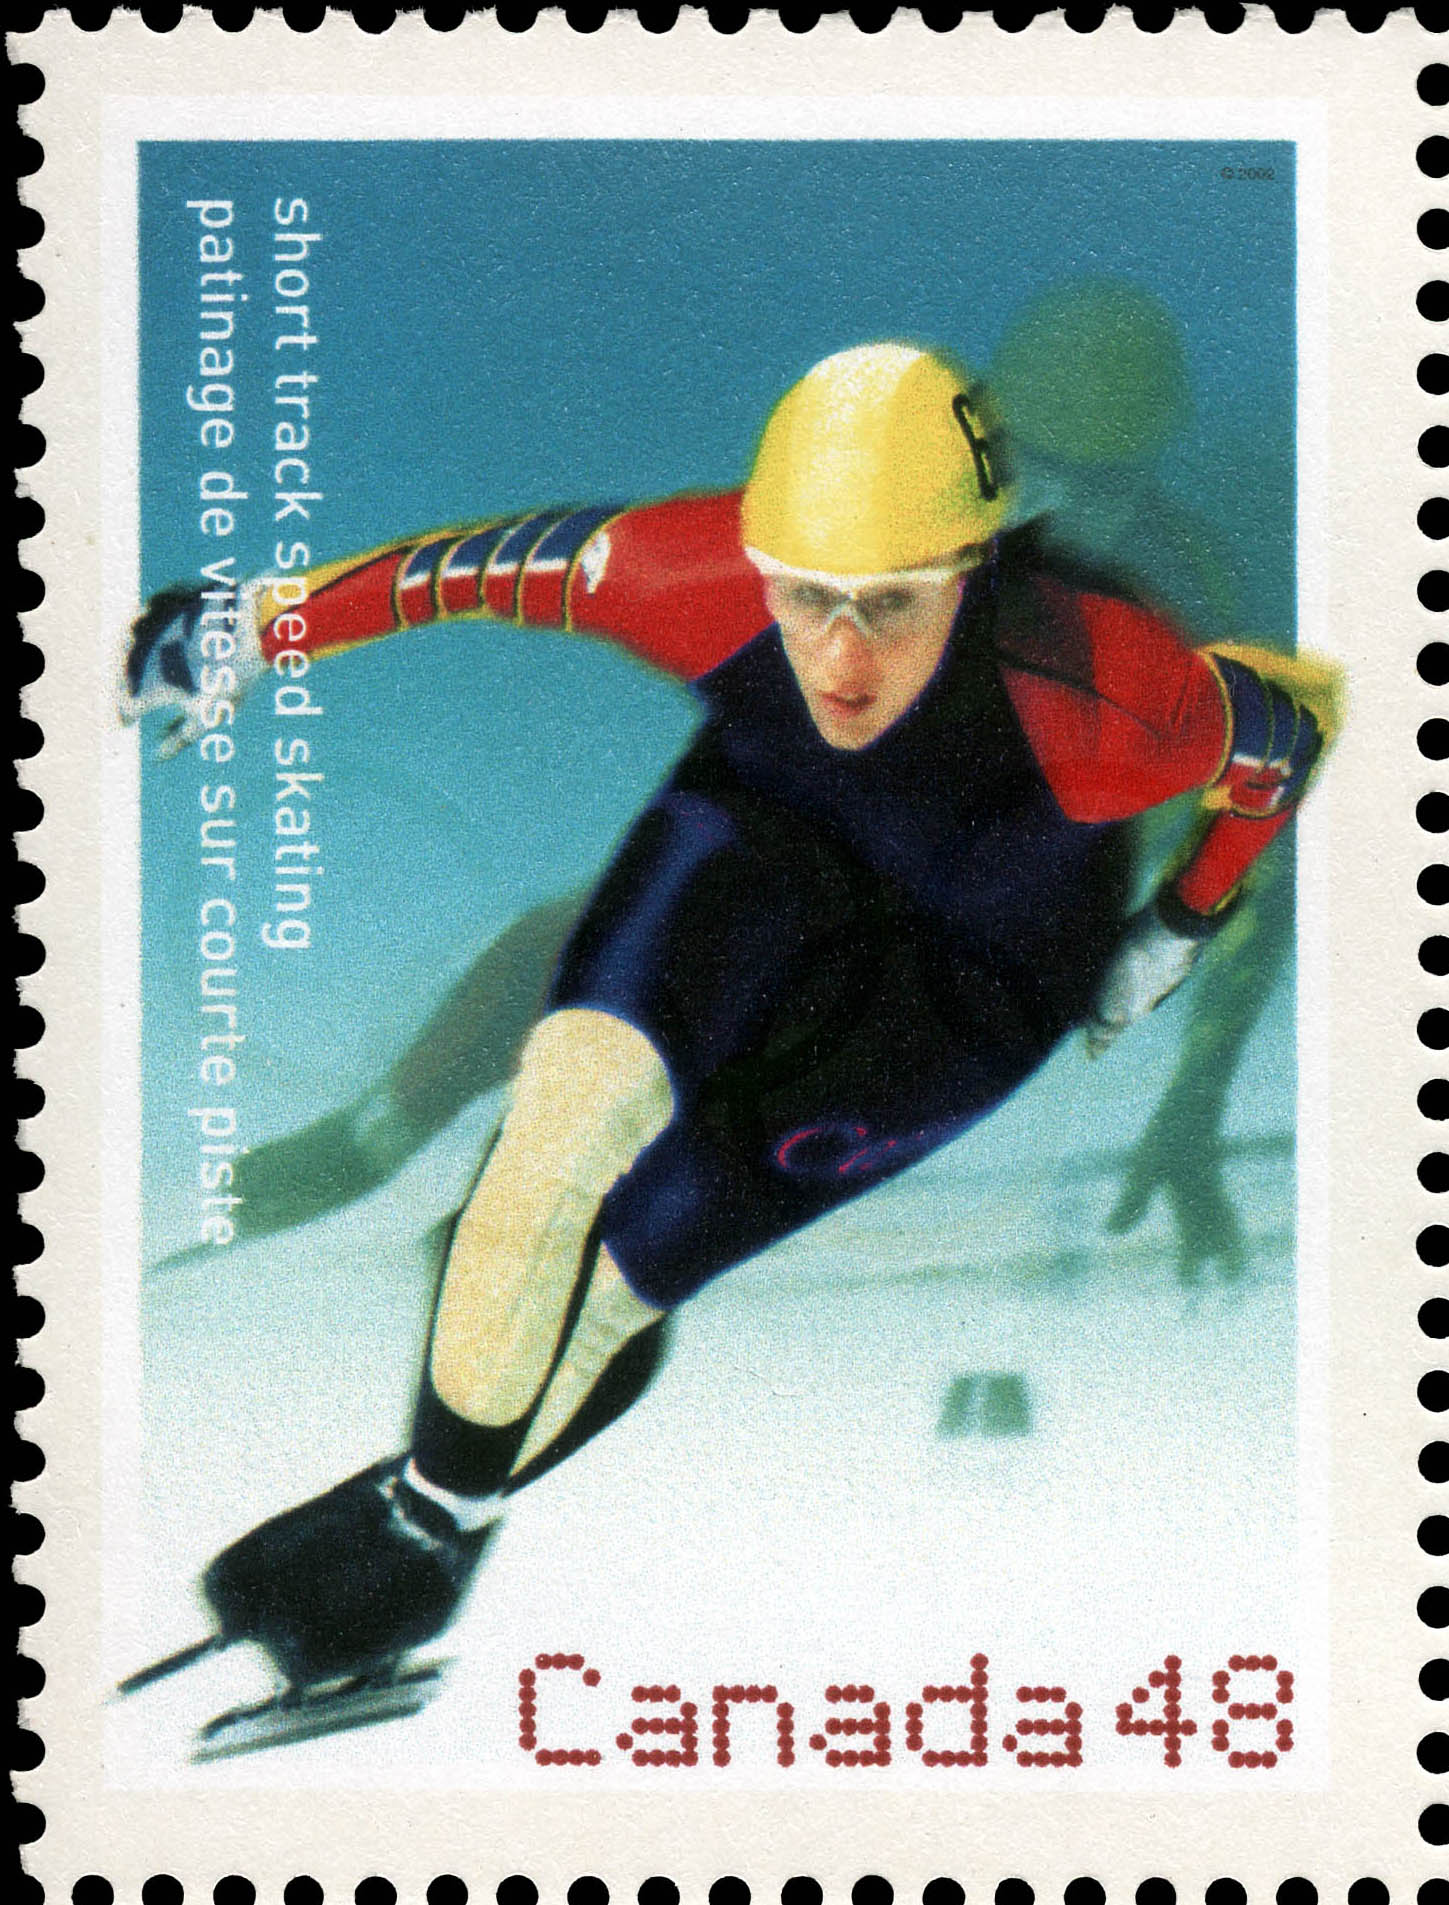 Short Track Speed Skating Canada Postage Stamp | 2002 Olympic Winter Games